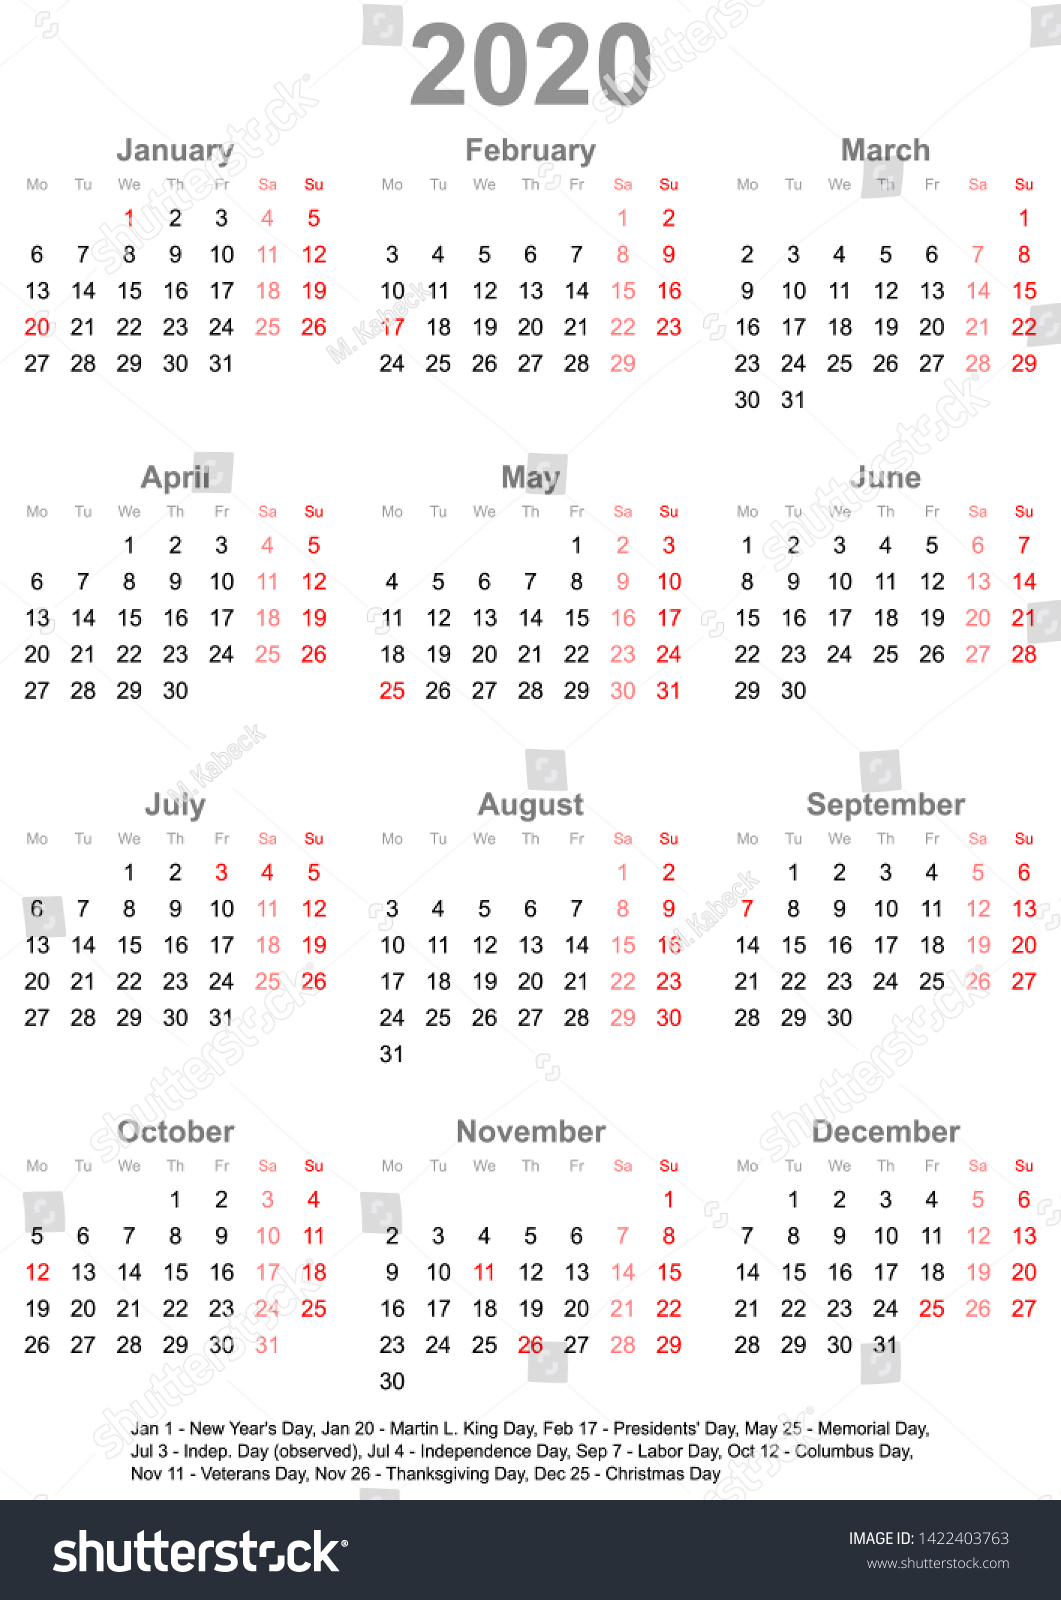 Simple Calendar 2020 One Year Glance Stock Vector (Royalty pertaining to Calendar At A Glance With Usa Holidays For 2020